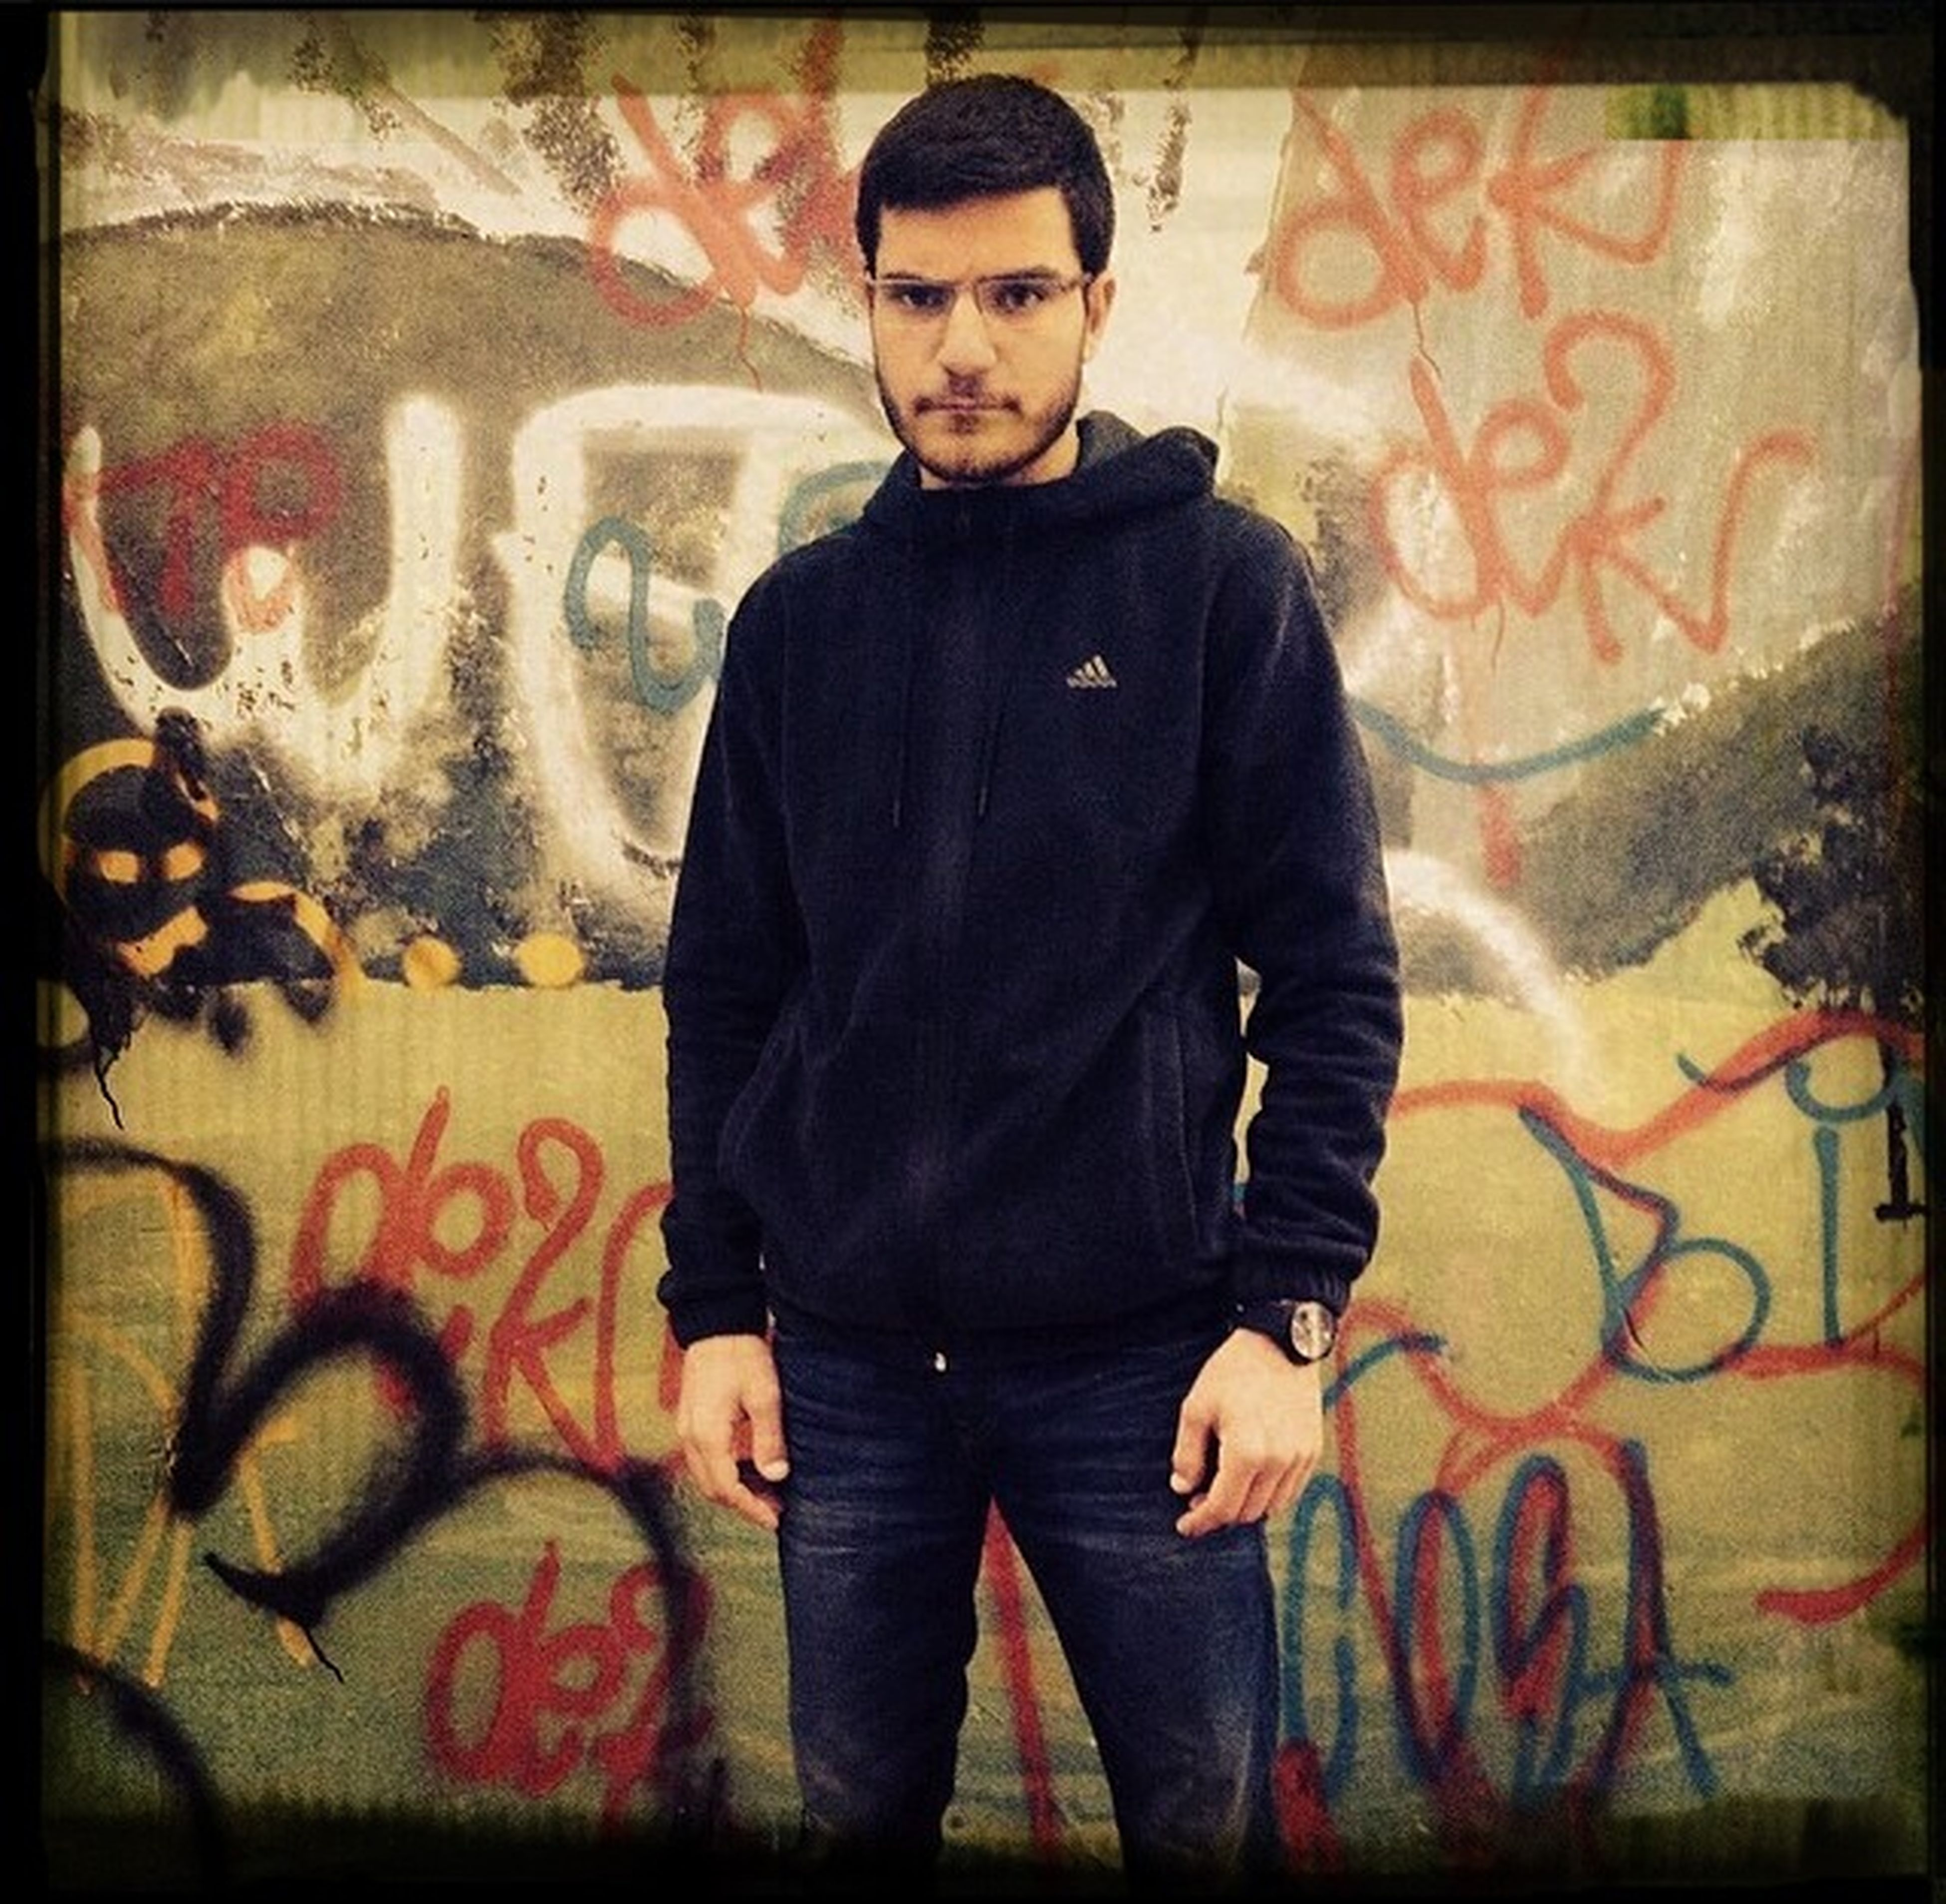 young adult, lifestyles, transfer print, indoors, graffiti, casual clothing, portrait, looking at camera, front view, person, auto post production filter, young men, leisure activity, three quarter length, standing, wall - building feature, text